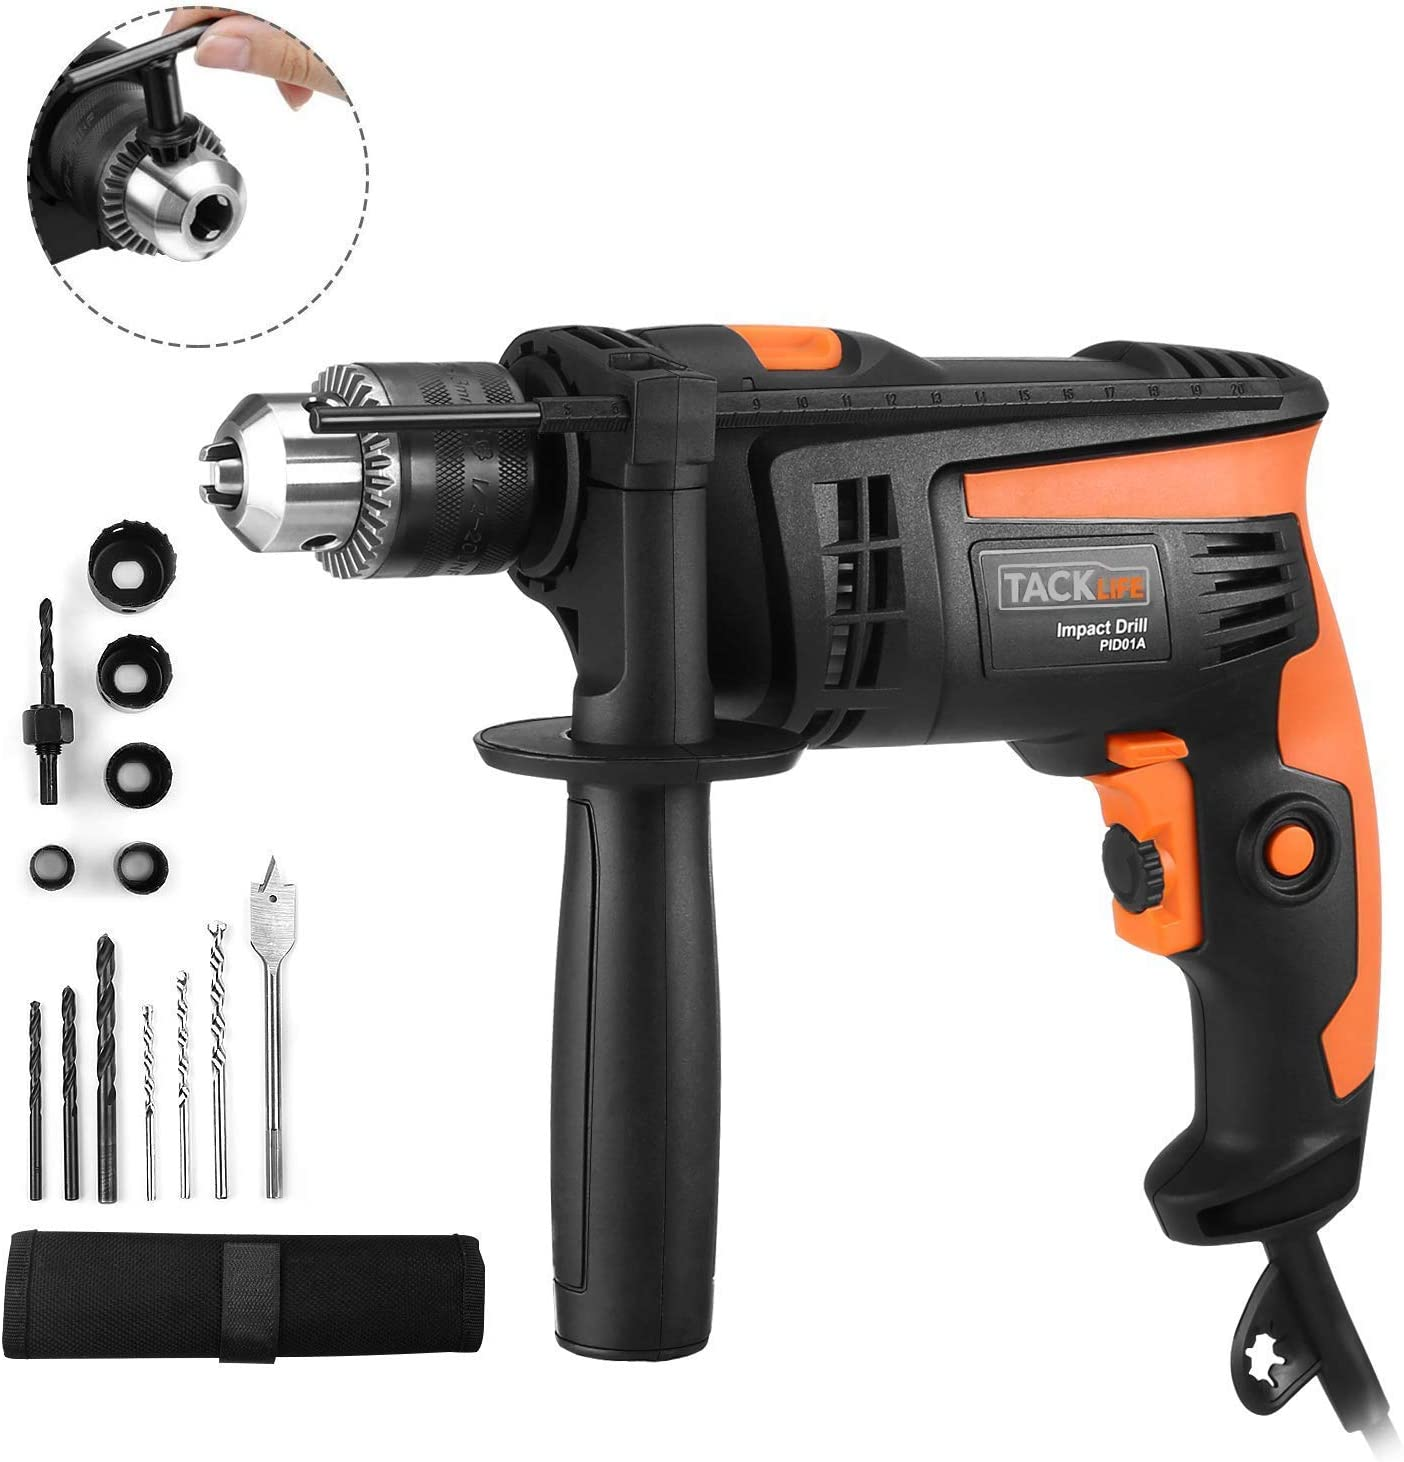 Hammer Drill, TACKLIFE 1/2-Inch Electric Drill, 2800 RPM, Hammer & Drill 2 Modes in 1, Keyed Chuck, 360°Rotating Handle, 12 Pcs Accessories Set, For Brick, Wood, Steel, Masonry - PID01A